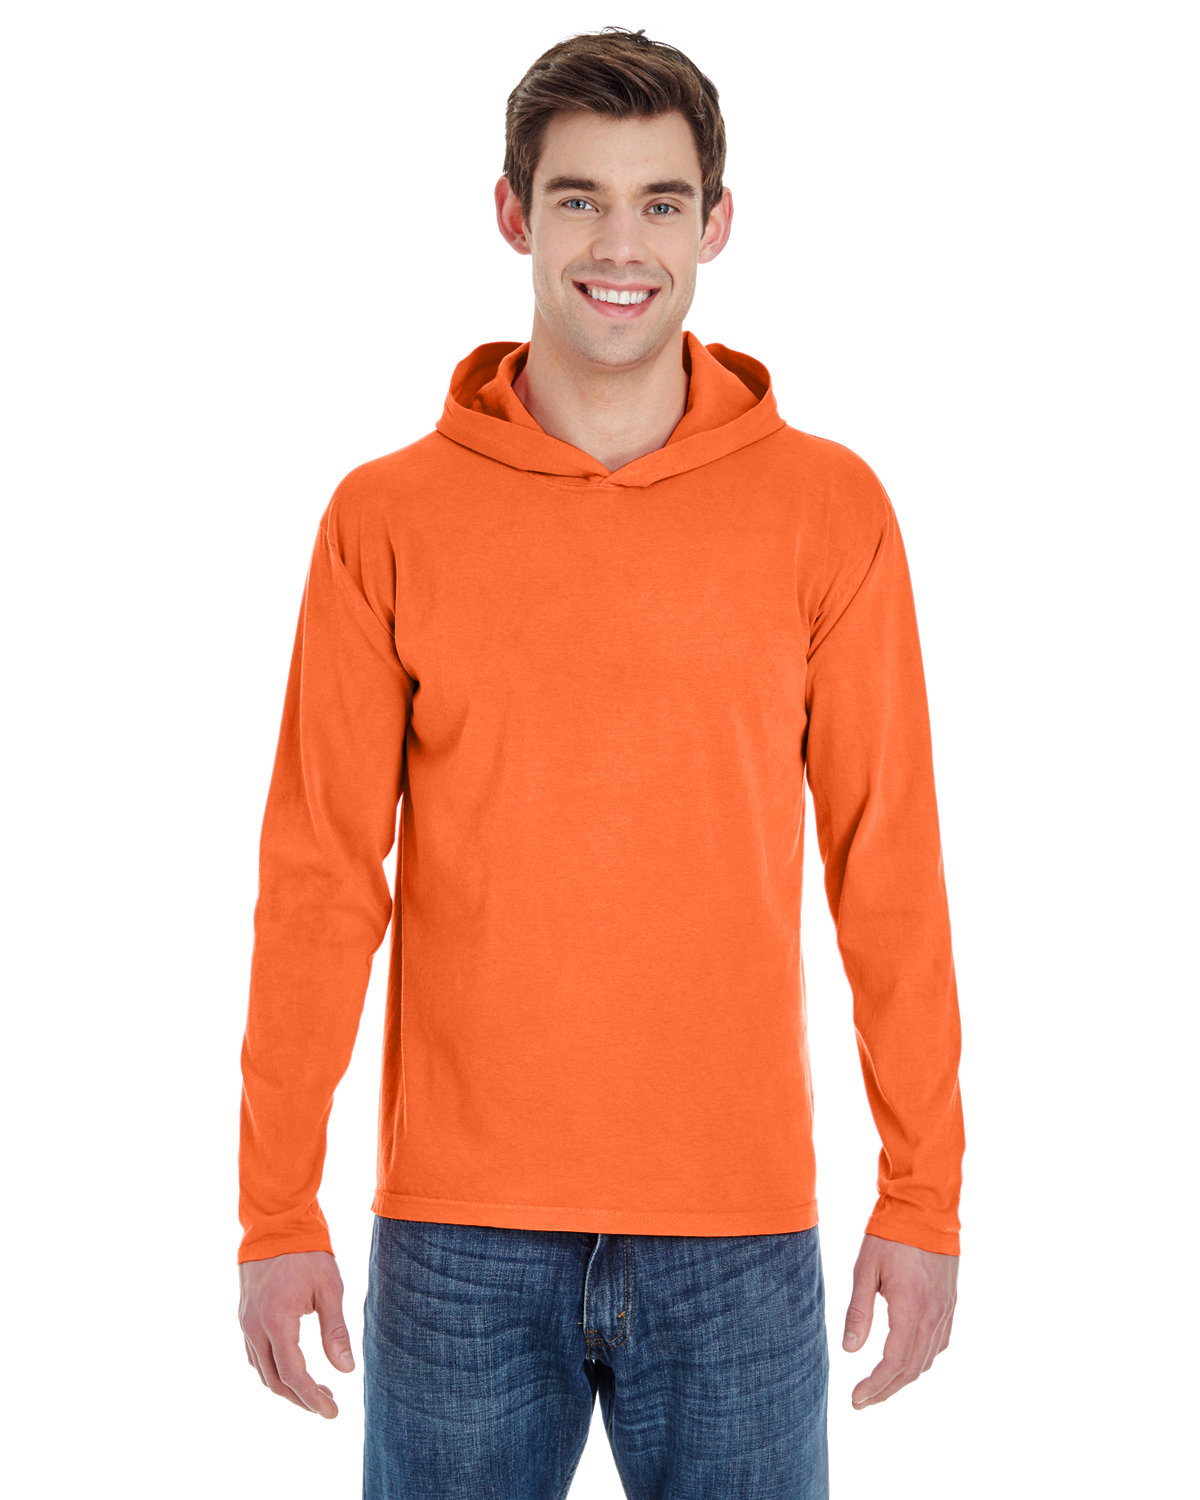 Comfort Colors Adult Heavyweight Long-Sleeve Hooded T-Shirt BRIGHT SALMON